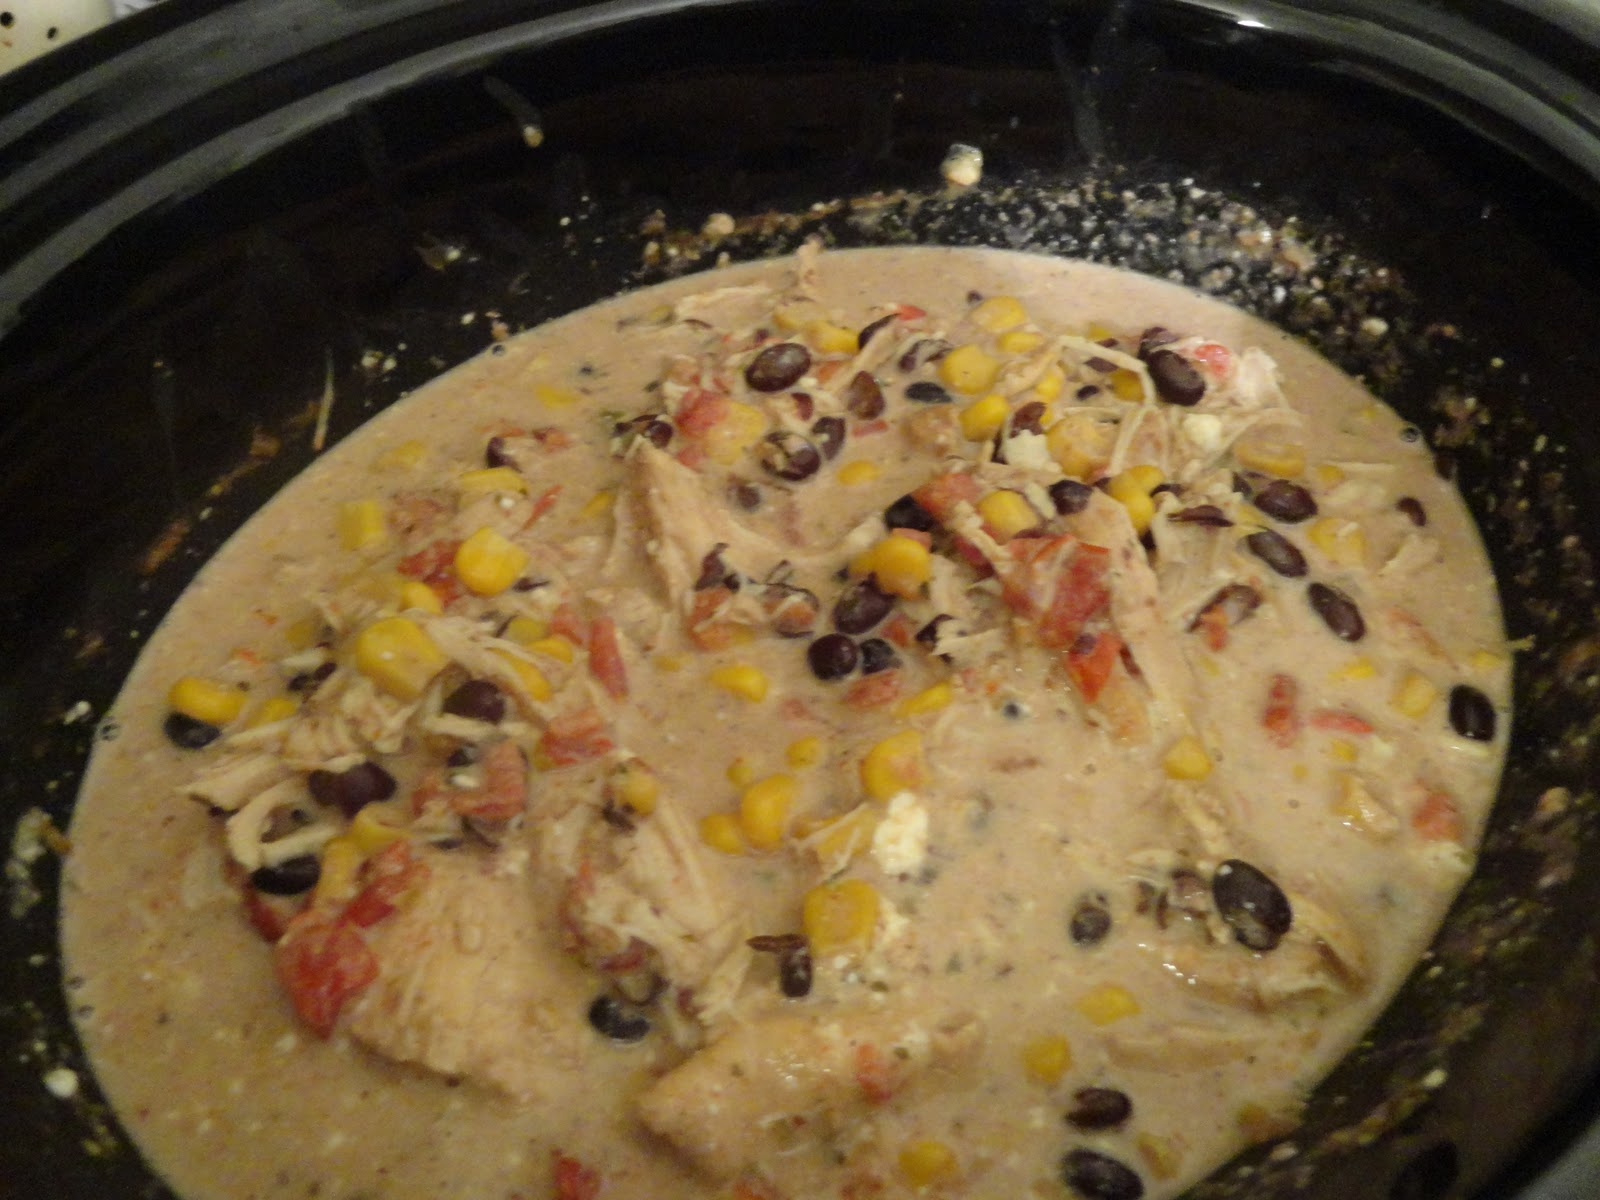 Le Beau Paon Victorien: Food: Slow Cooker Cream Cheese Chicken Chili